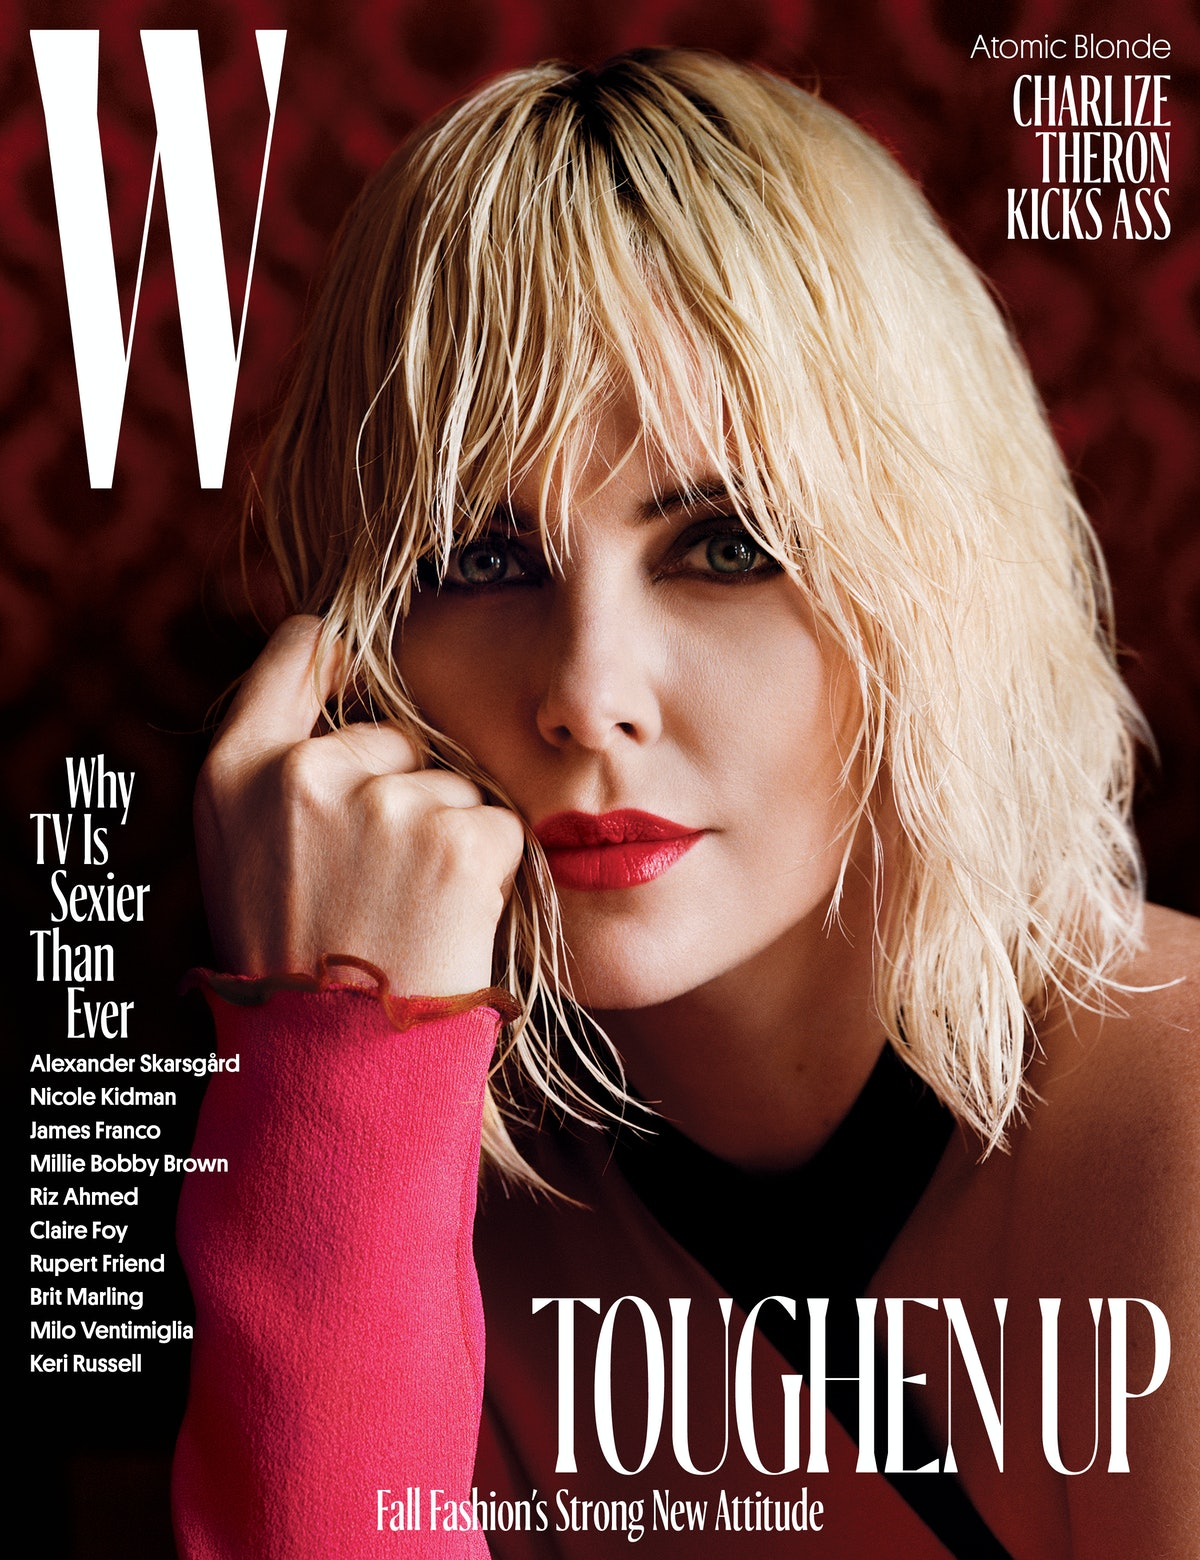 Charlize Theron - August 2017 Cover